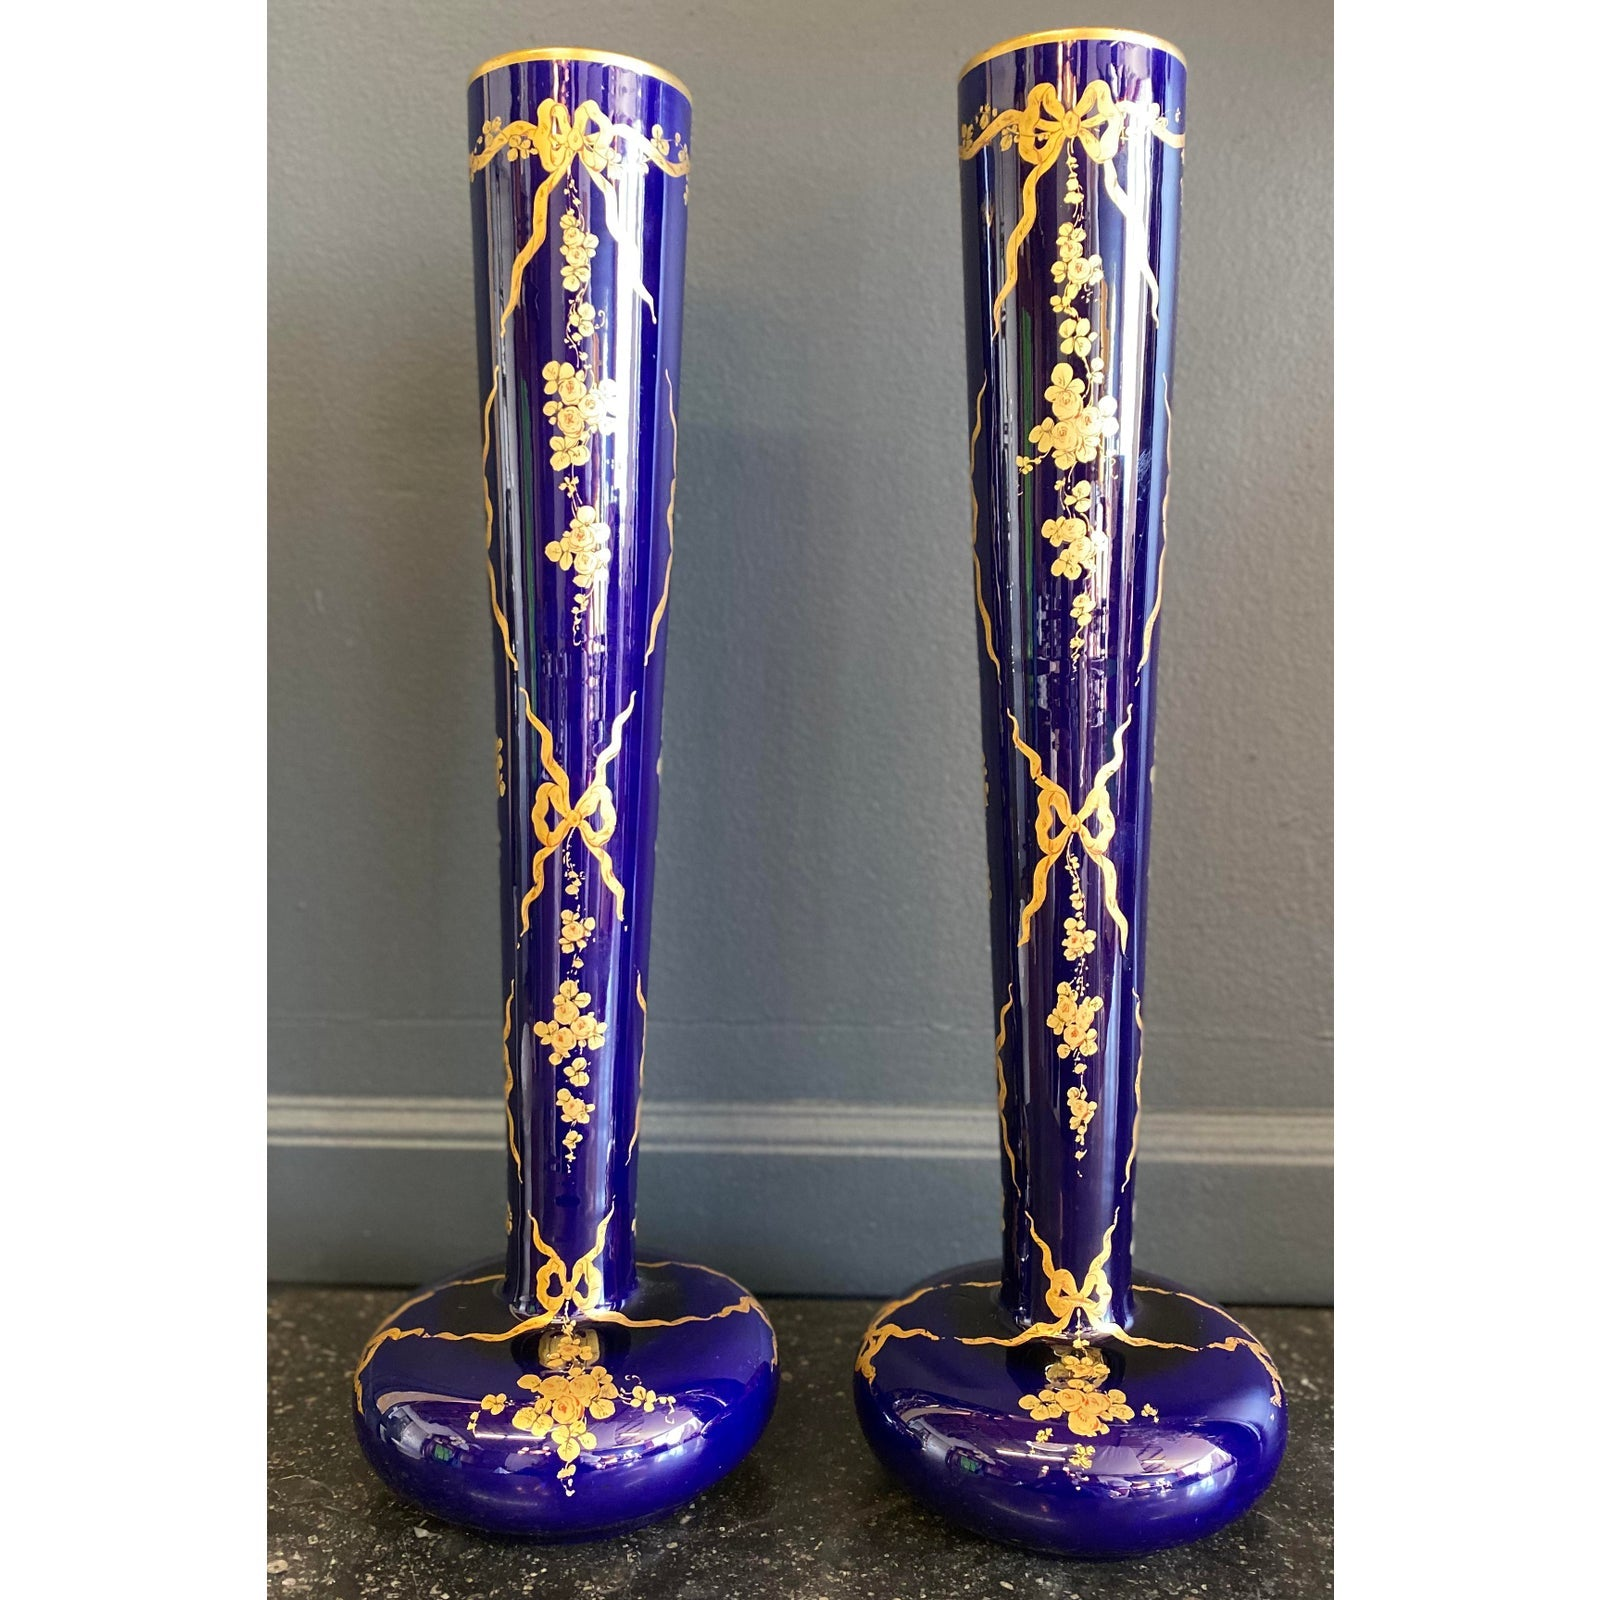 Antique Gustave Asch Cobalt Blue and Gold Porcelain Vases - a Pair - French Antiques www.Decoparis.com